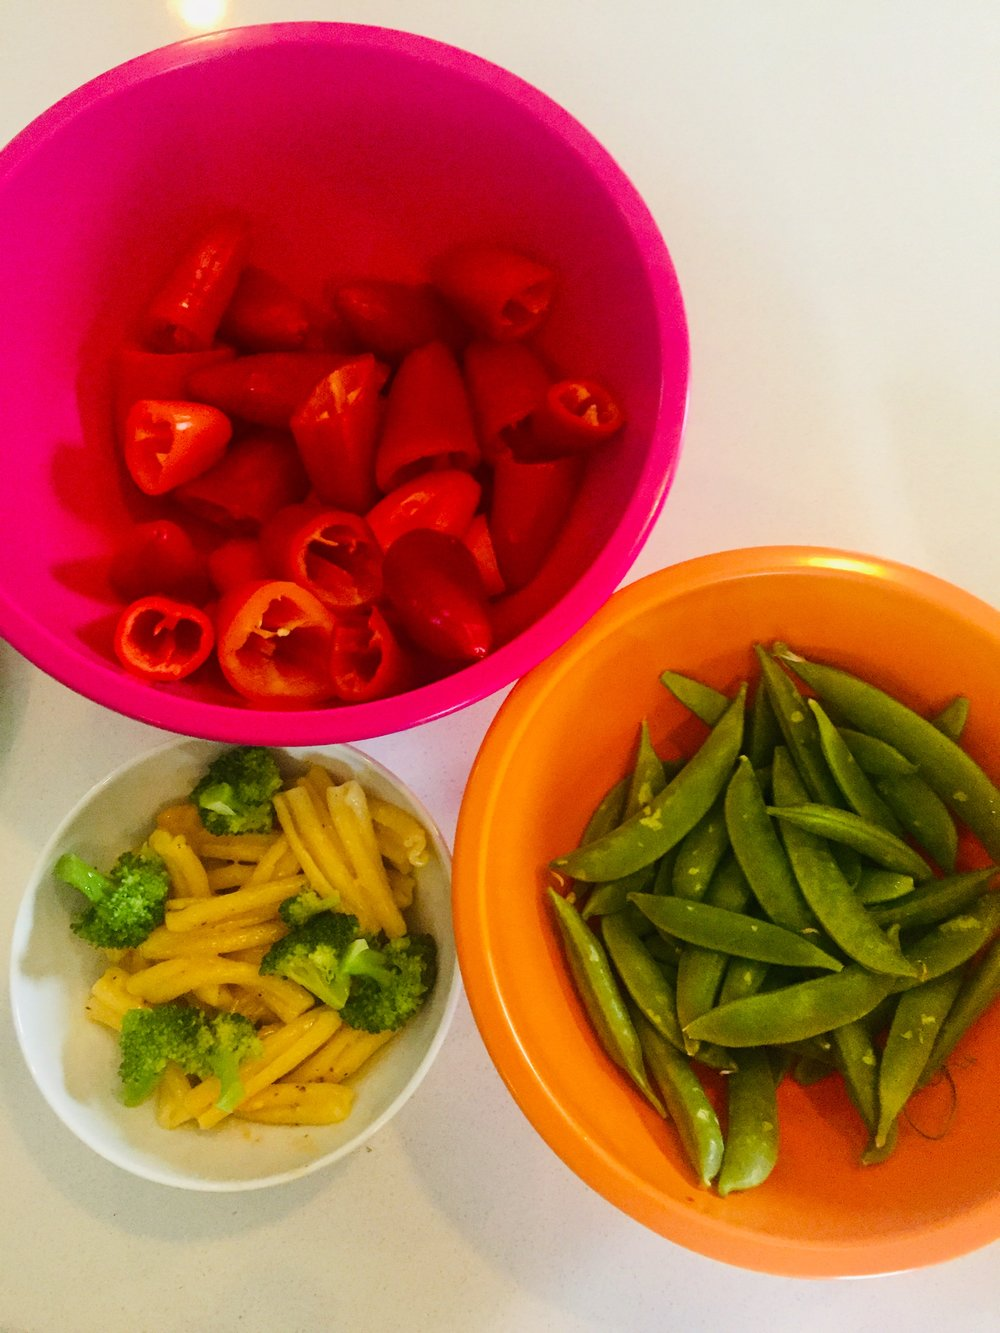 Peppers, snap peas, whole wheat pasta and cooked broccoli (with butter and salt).